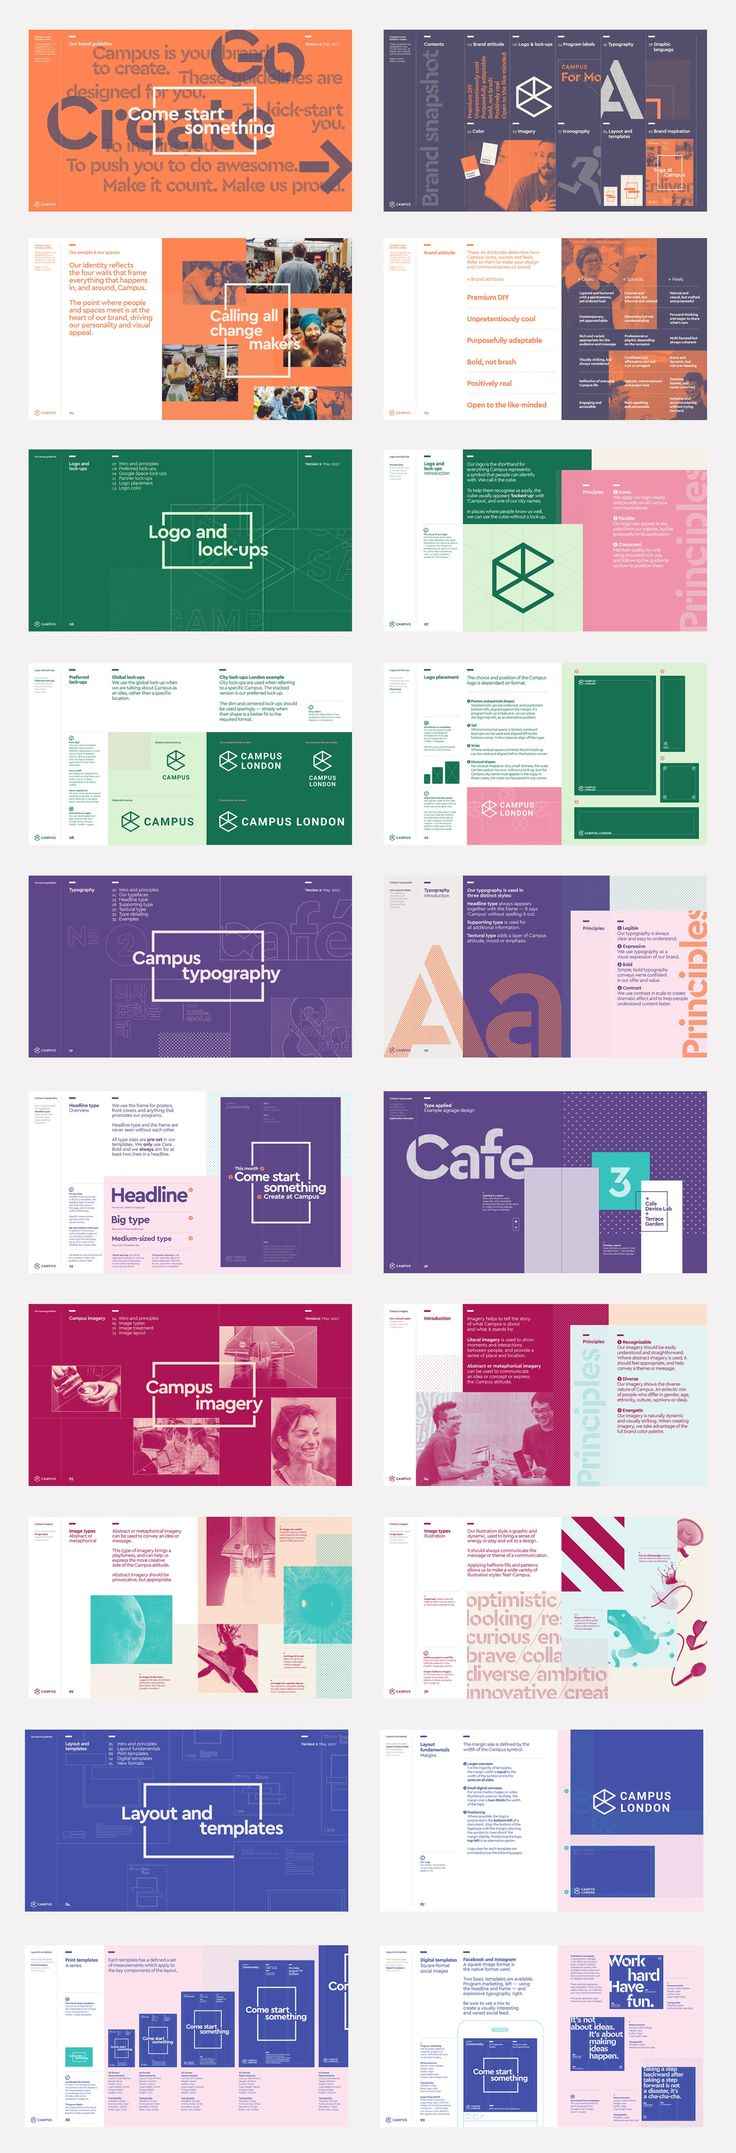 Logo, visual identity, brochure and website by MultiAdaptor for Google's co-working and event space concept Campus. Opinion by Richard Baird.